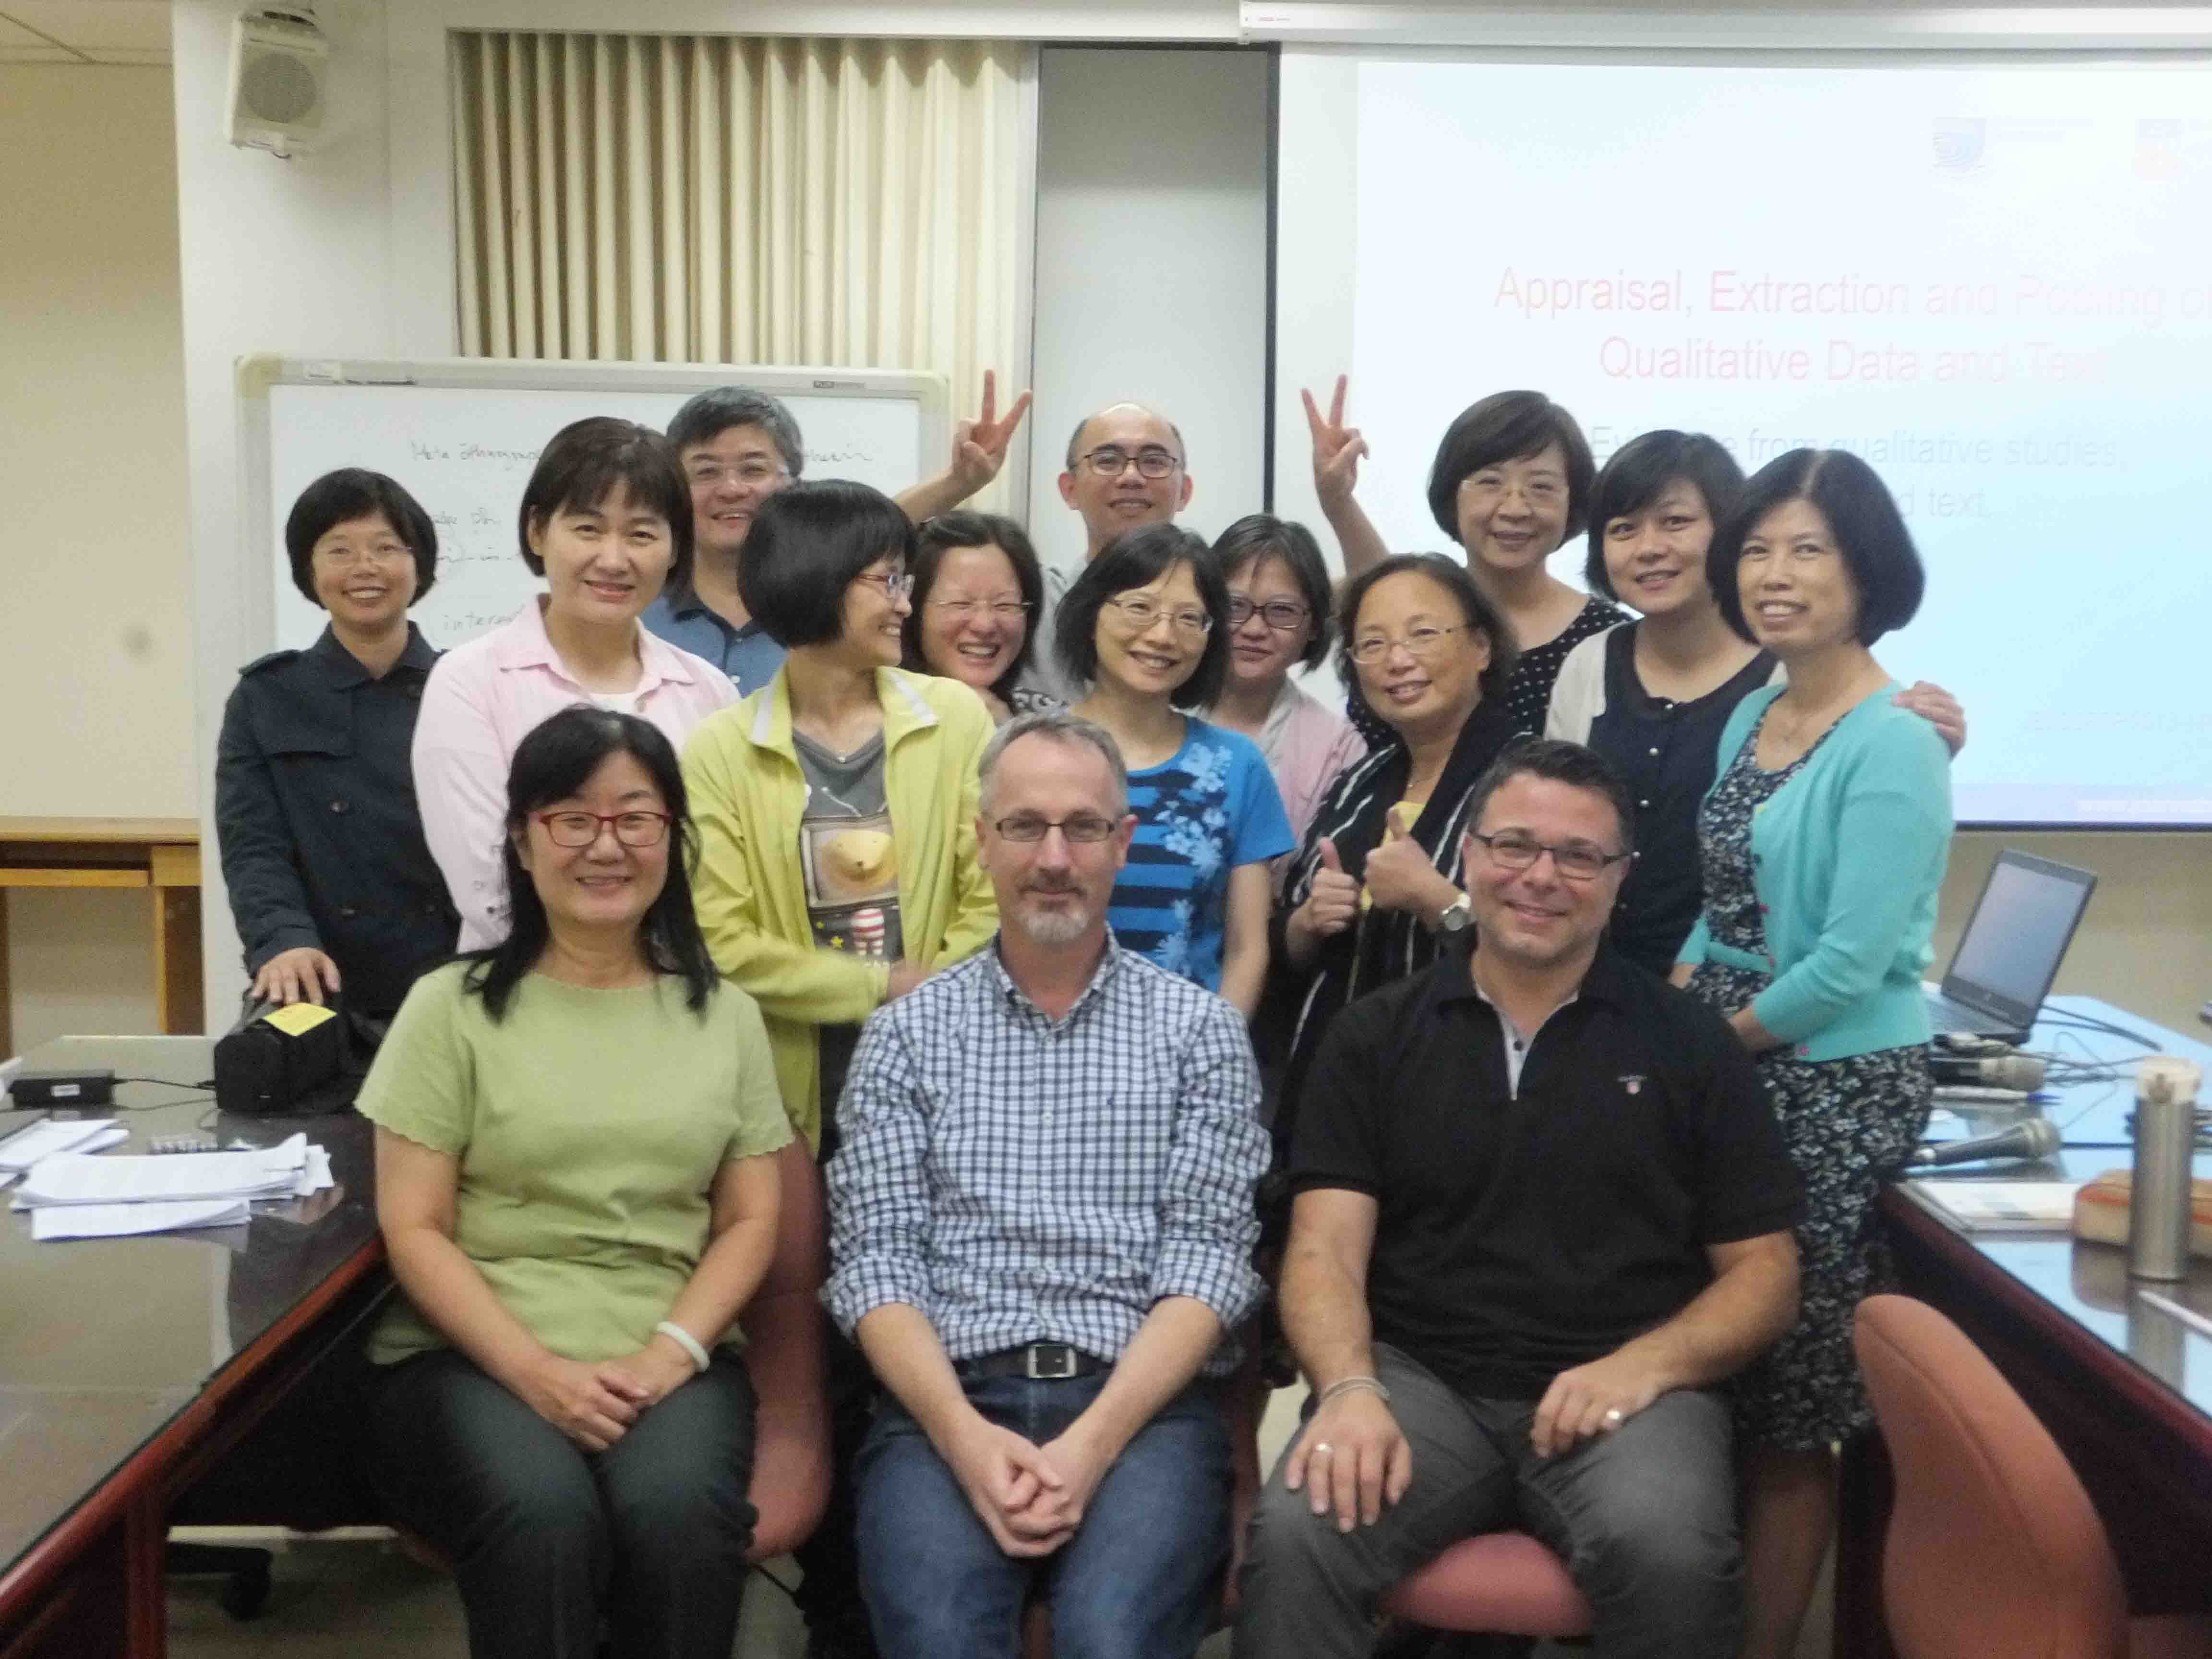 A group photo of speakers from Australia JBI headquarters with trainees.